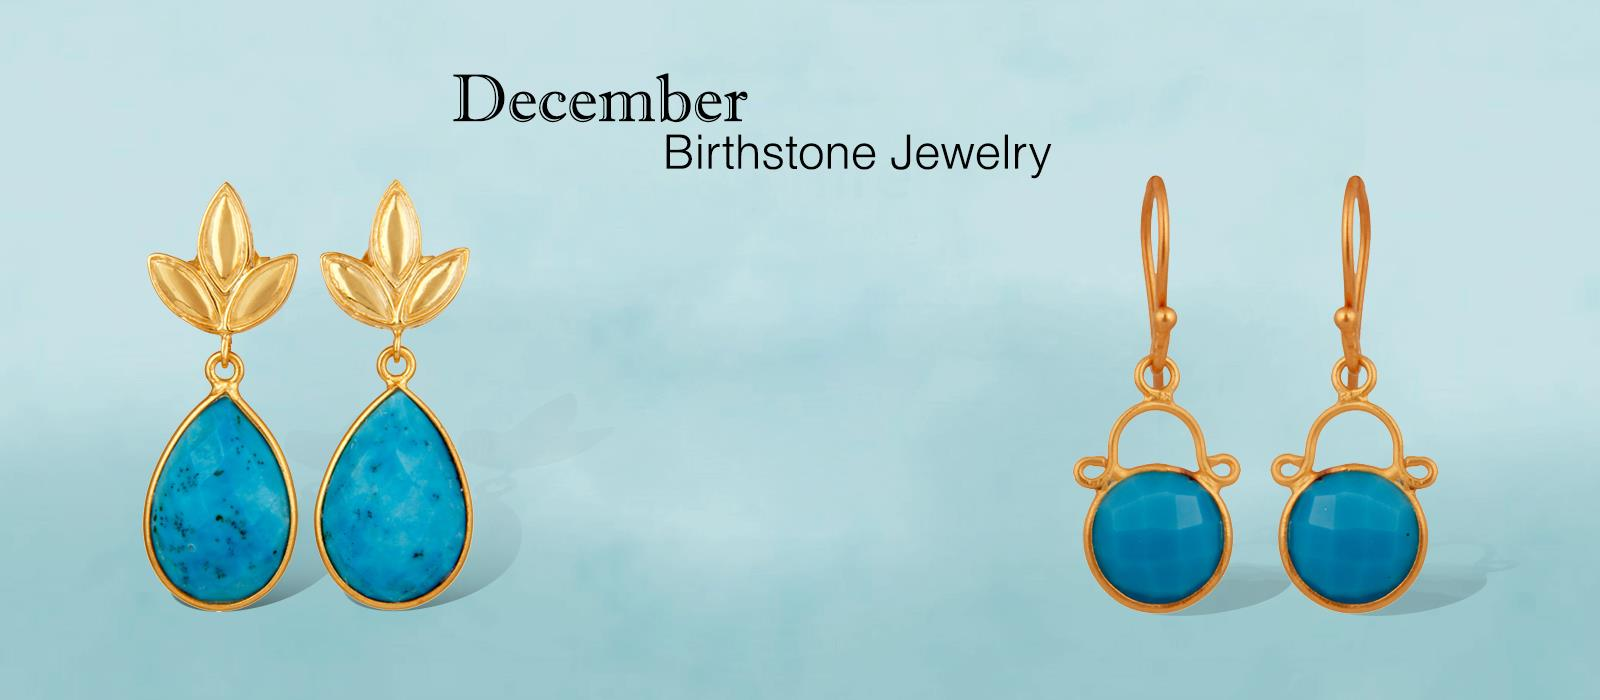 birthstone jewelry manufacturer India, Fabricante de joyas piedra del zodiaco India, birthstone smykker producent Indien, Fabricant de bijoux Pierre de naissance Inde, Geburtsstein Schmuckhersteller Indien, nati produttore di gioielli india